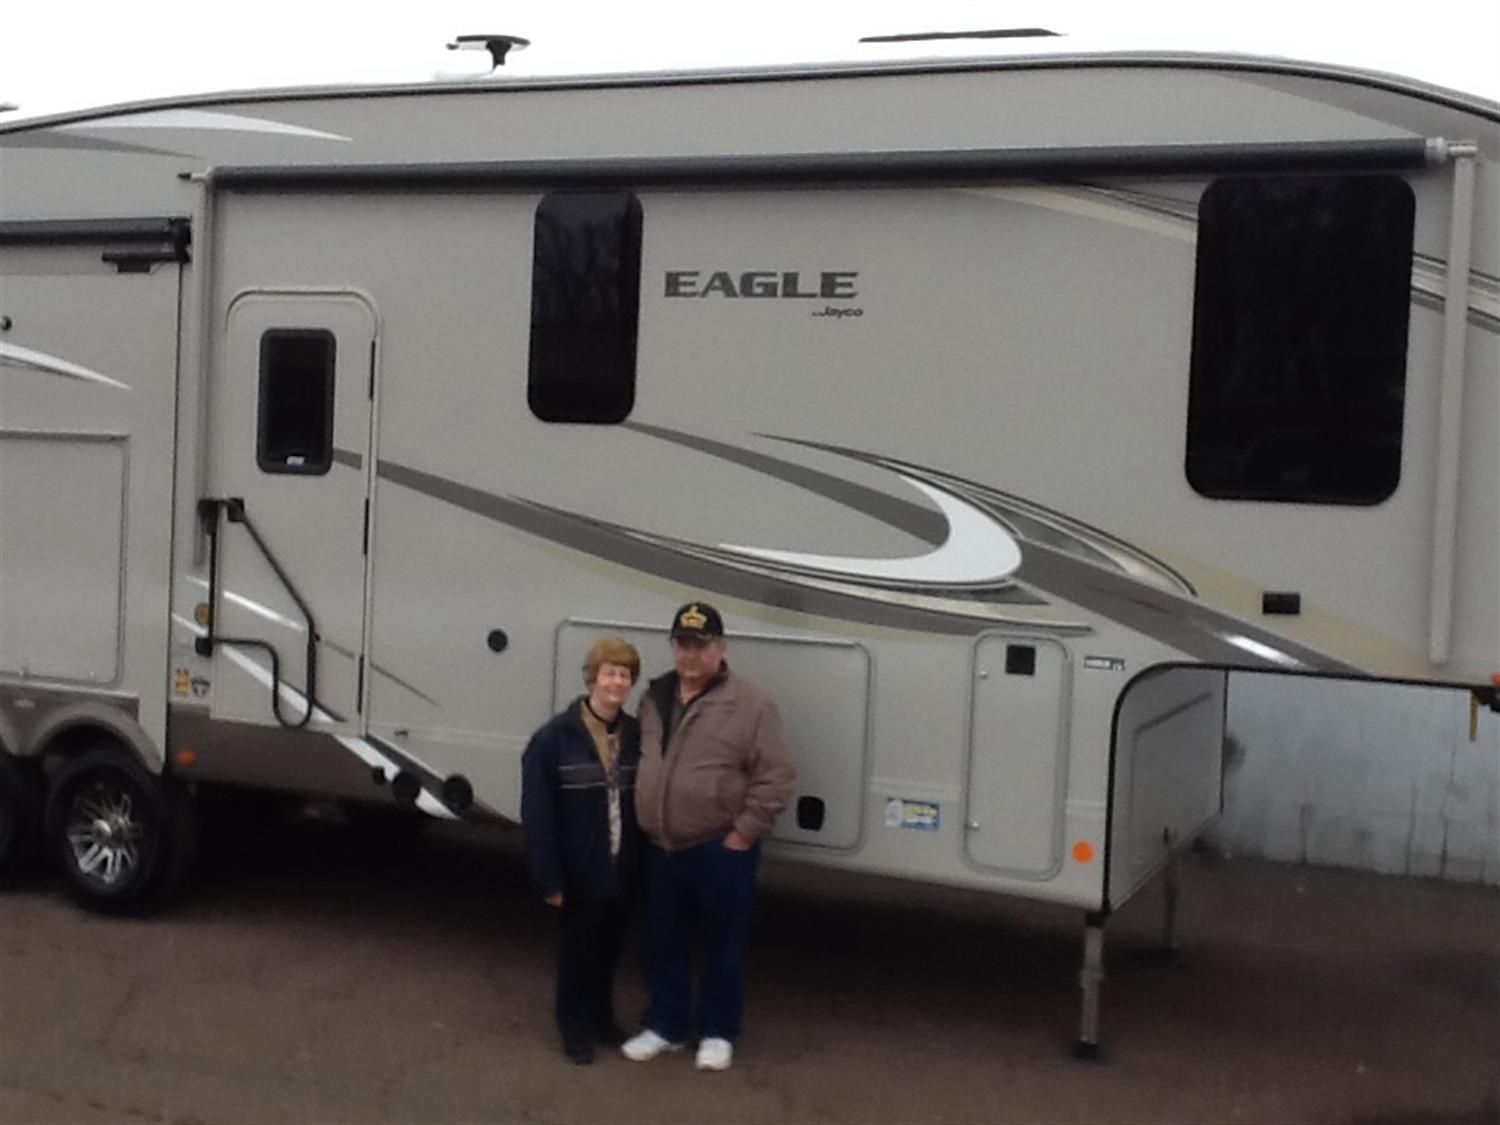 Awesome Congratulations To William On Your New 2019 Jayco Eagle Thank You Again Fretz Rv And Fretz Rv Recreational Vehicles Jayco Vehicles